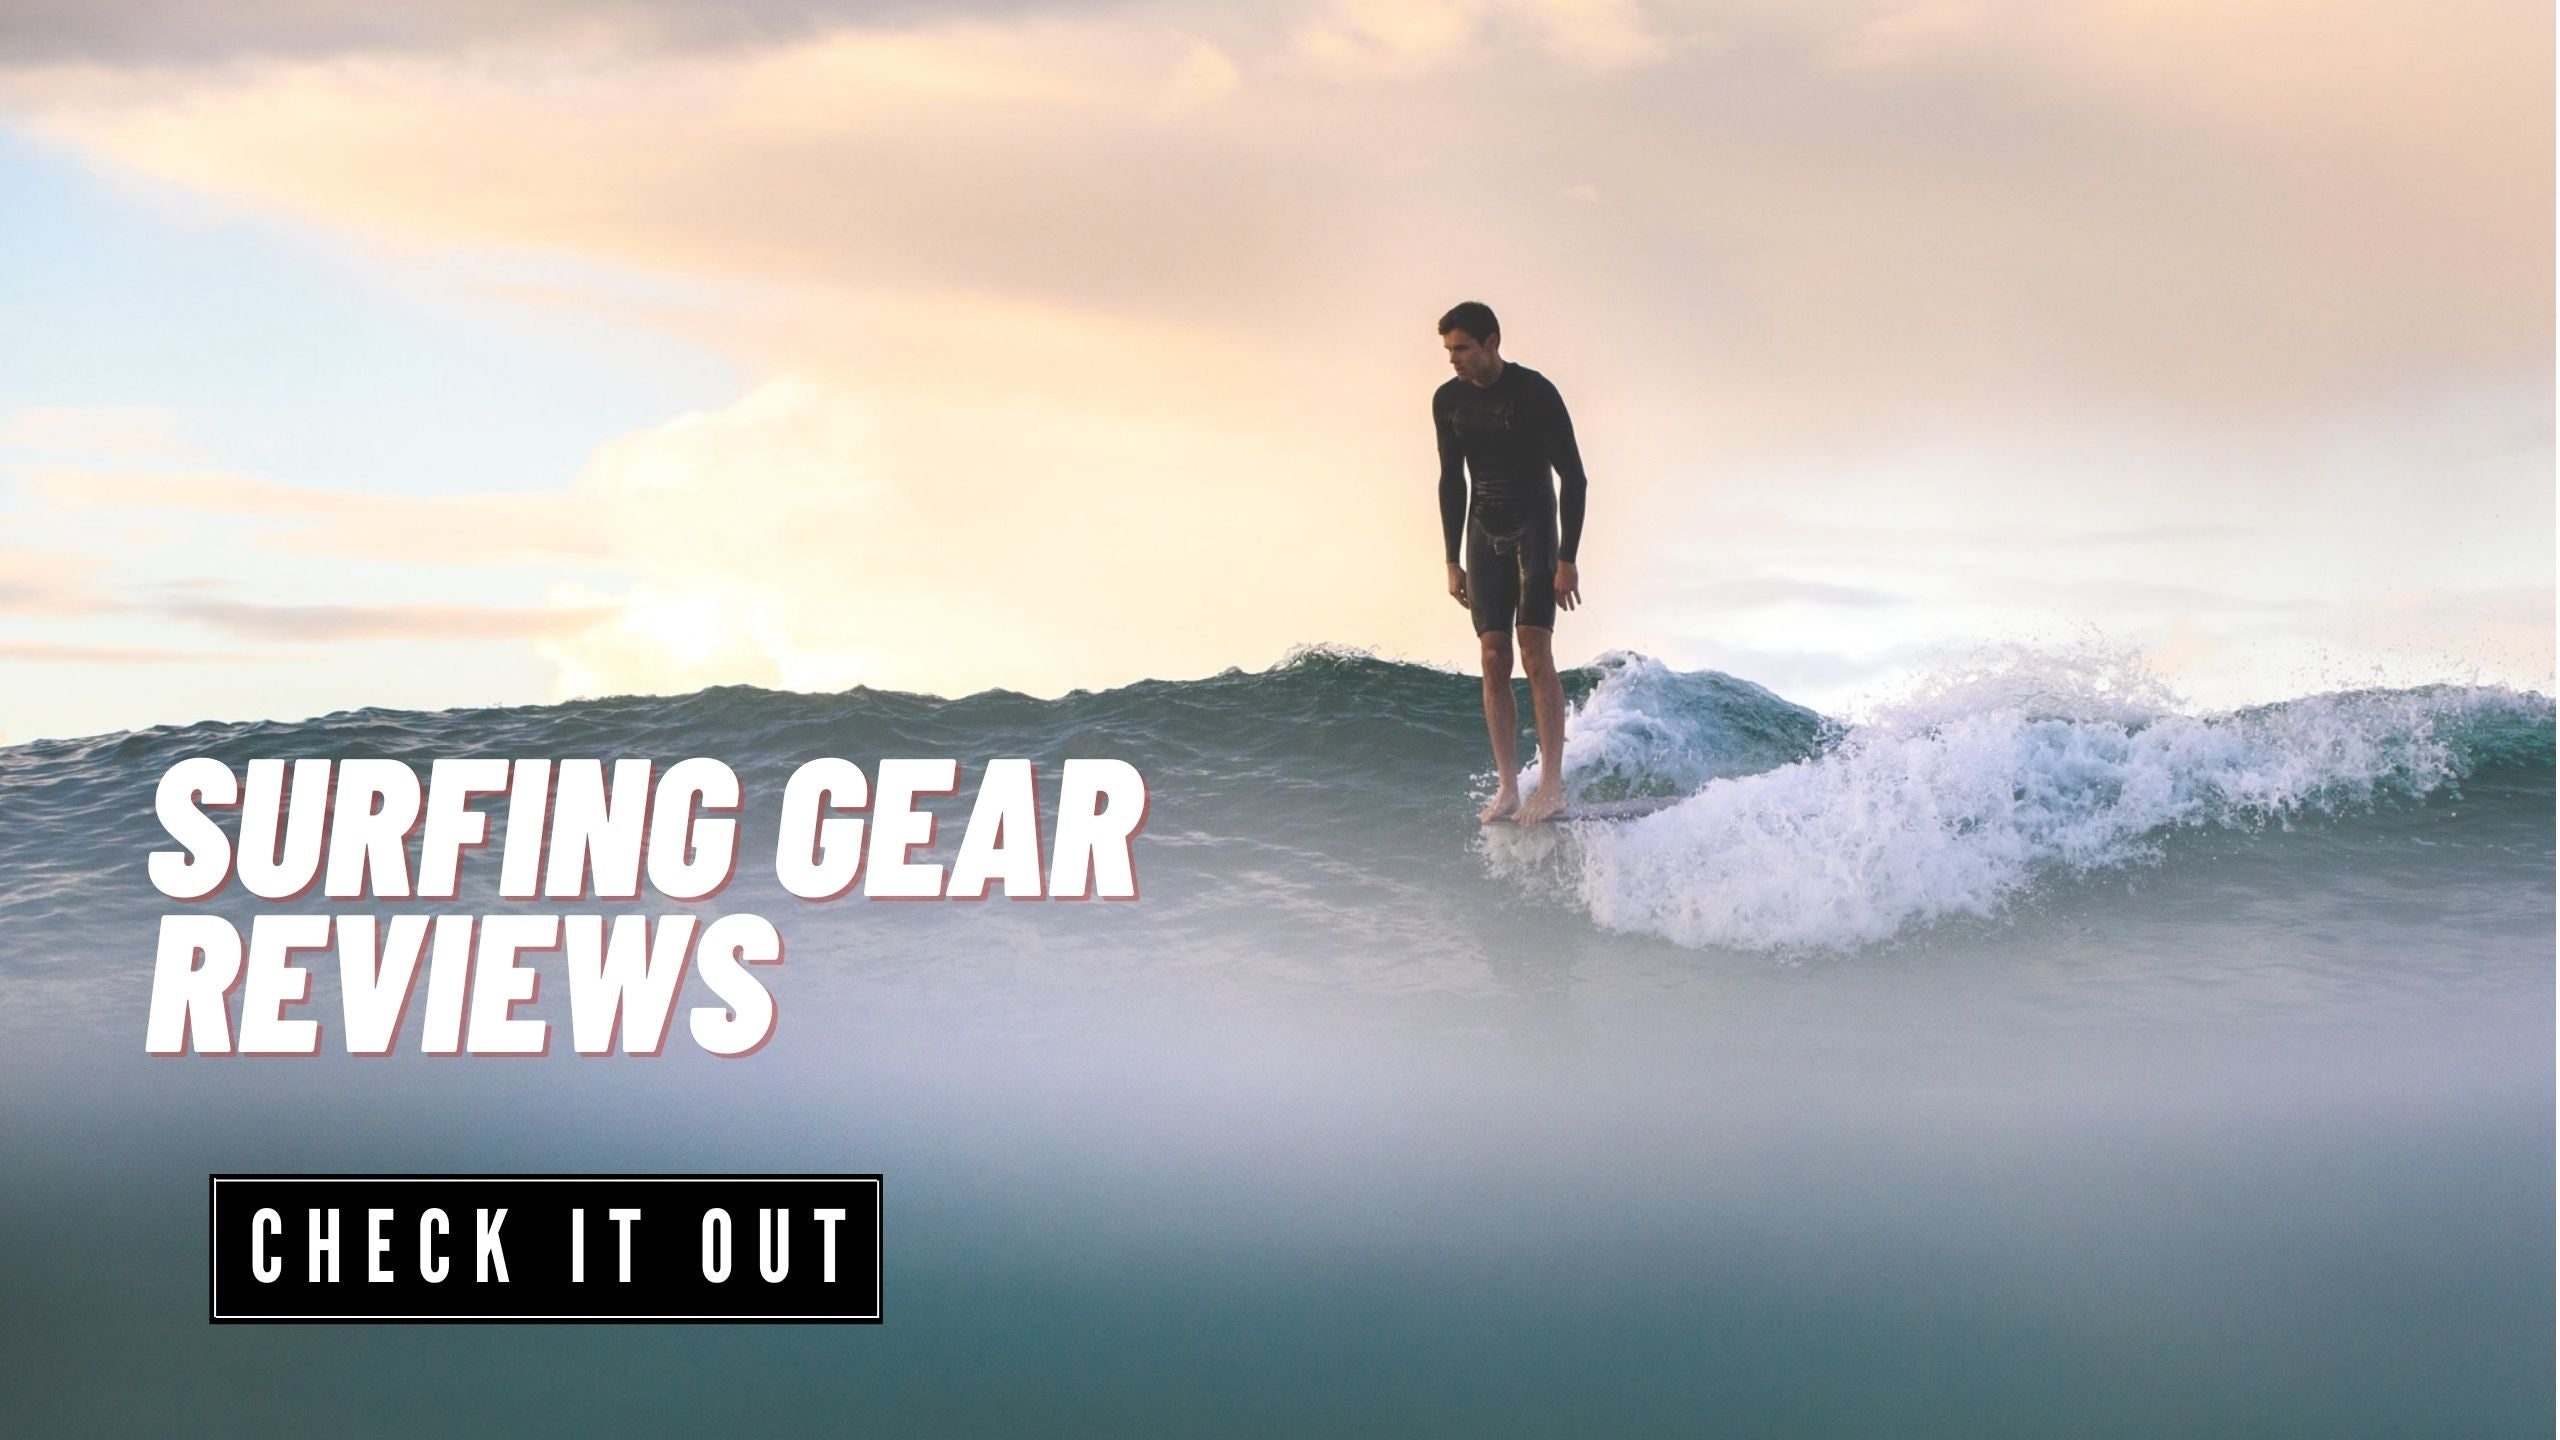 SURFING Gear Reviews - Surfboards - Deck Pad- Surfing Fins and More - Hawaiian South Shore